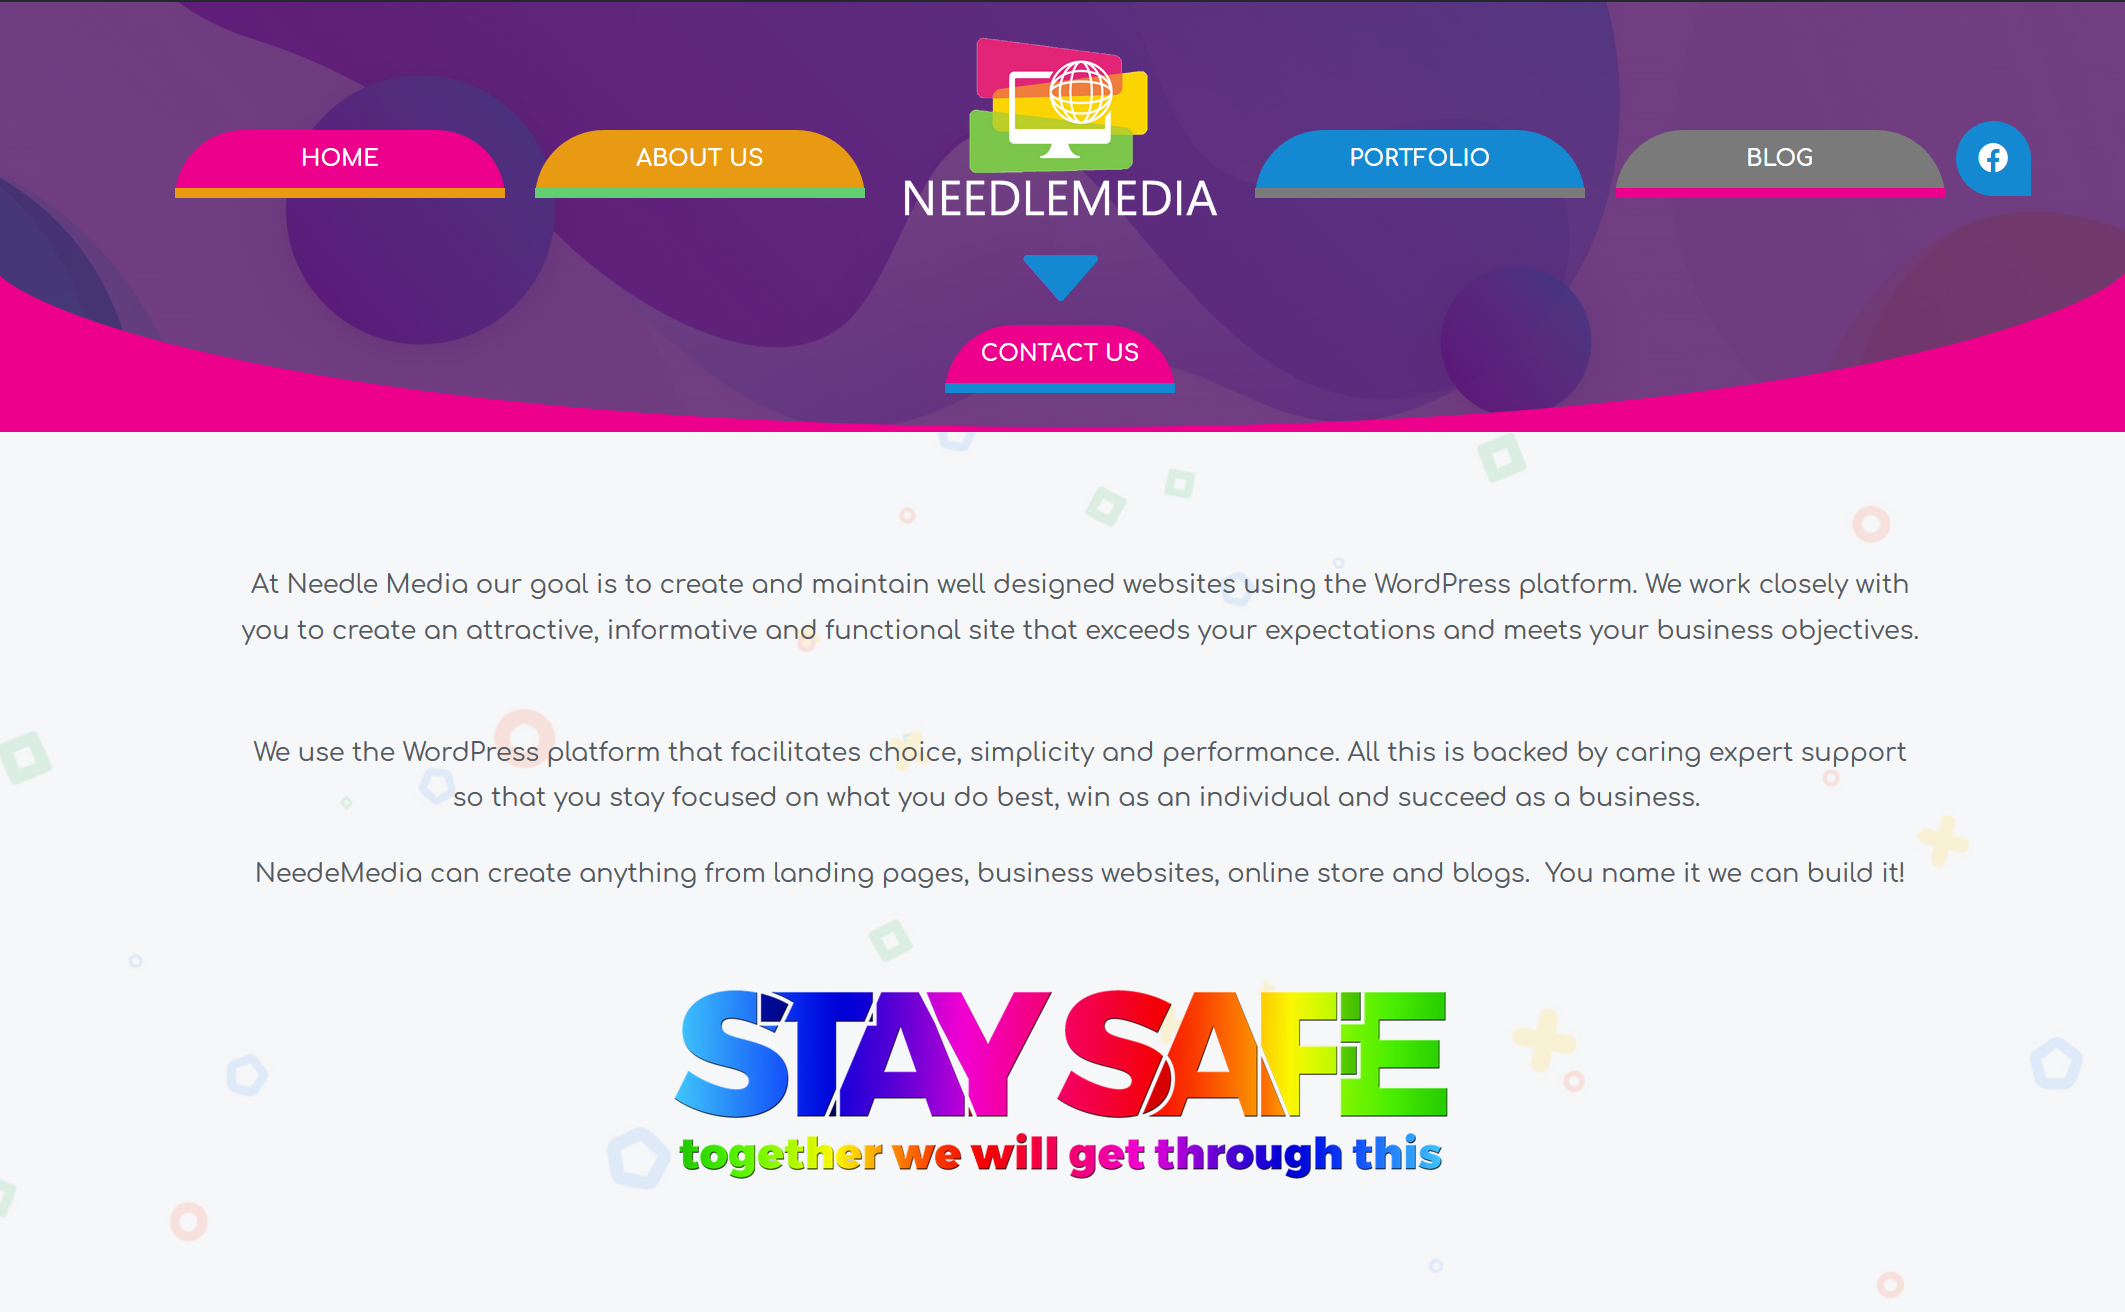 NEEDLEMEDIA HAS HAD A FACELIFT